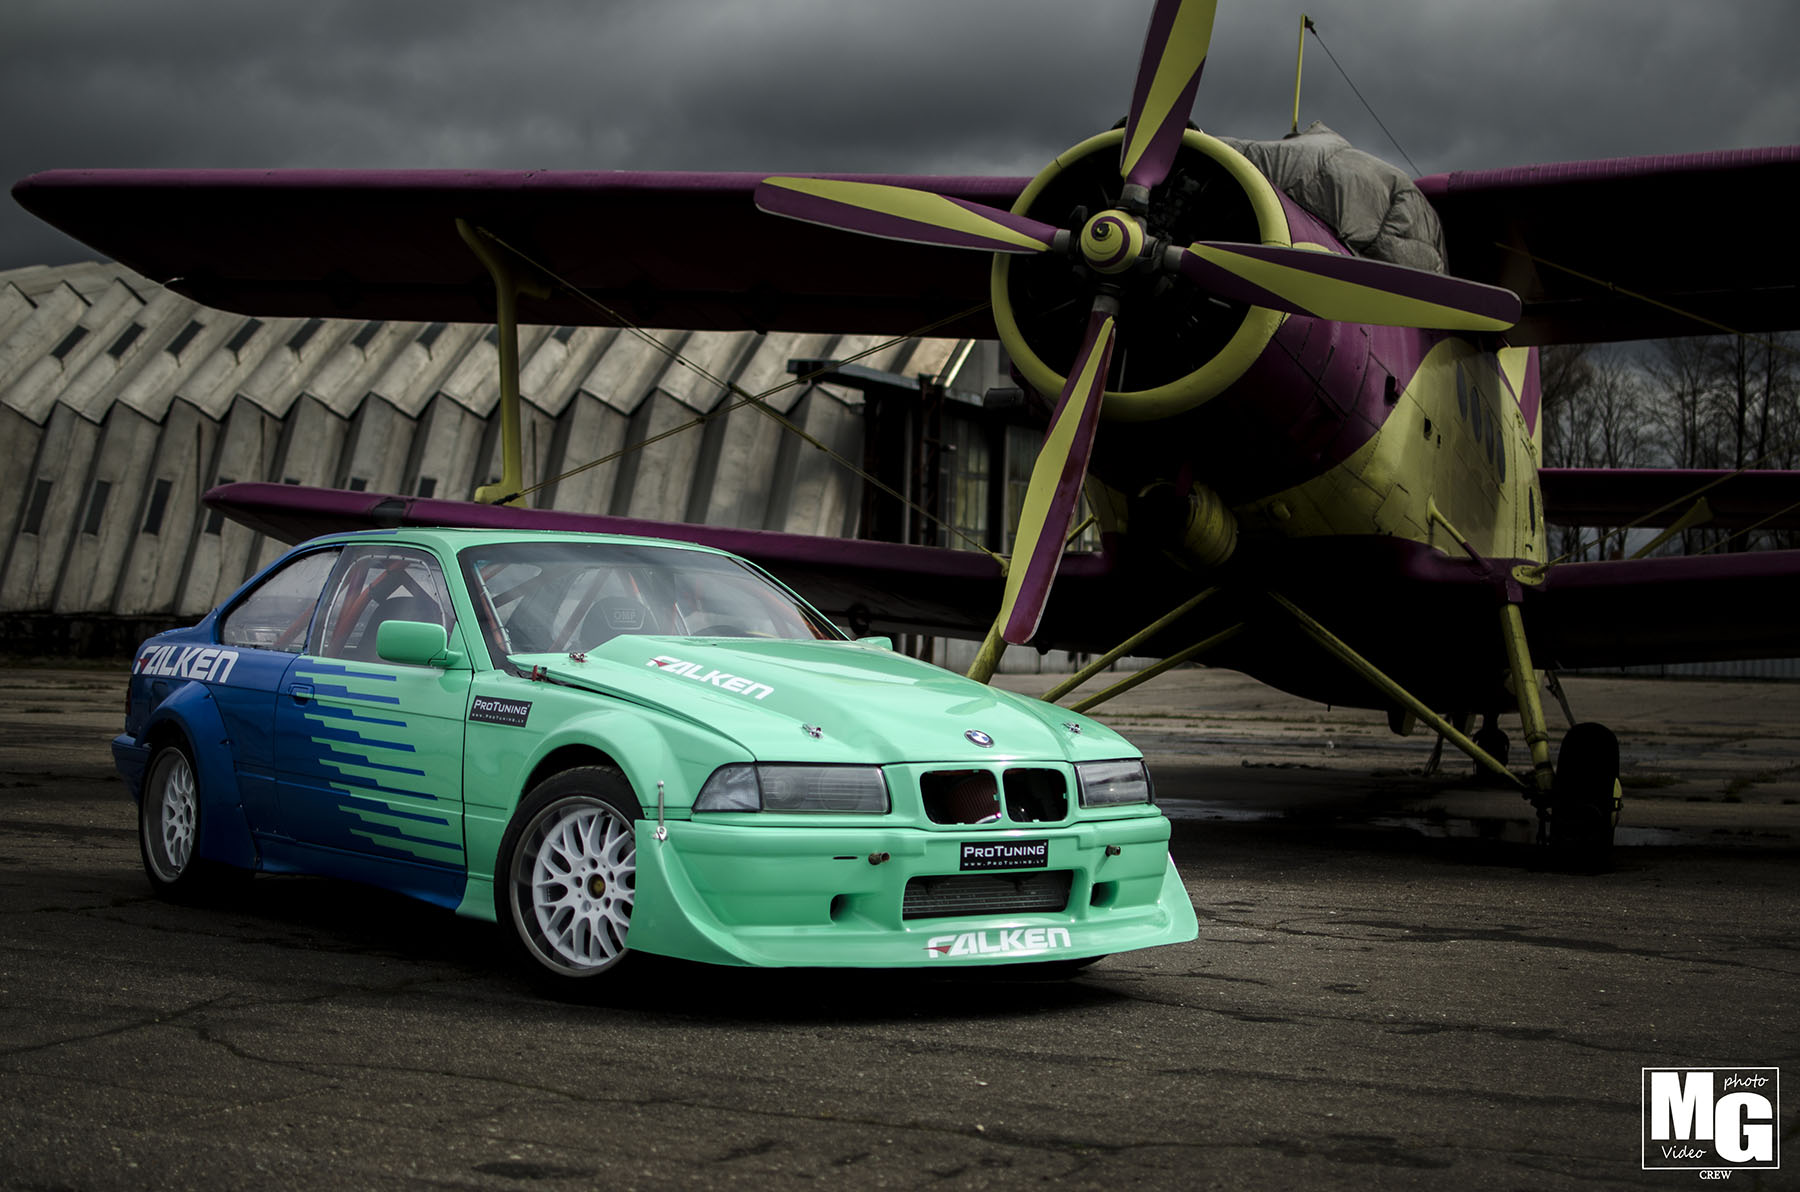 hight resolution of arturs miskinis may speak three languages but on the track his 1992 bmw e36 speaks only one the 27 year old from riga latvia competes under the falken